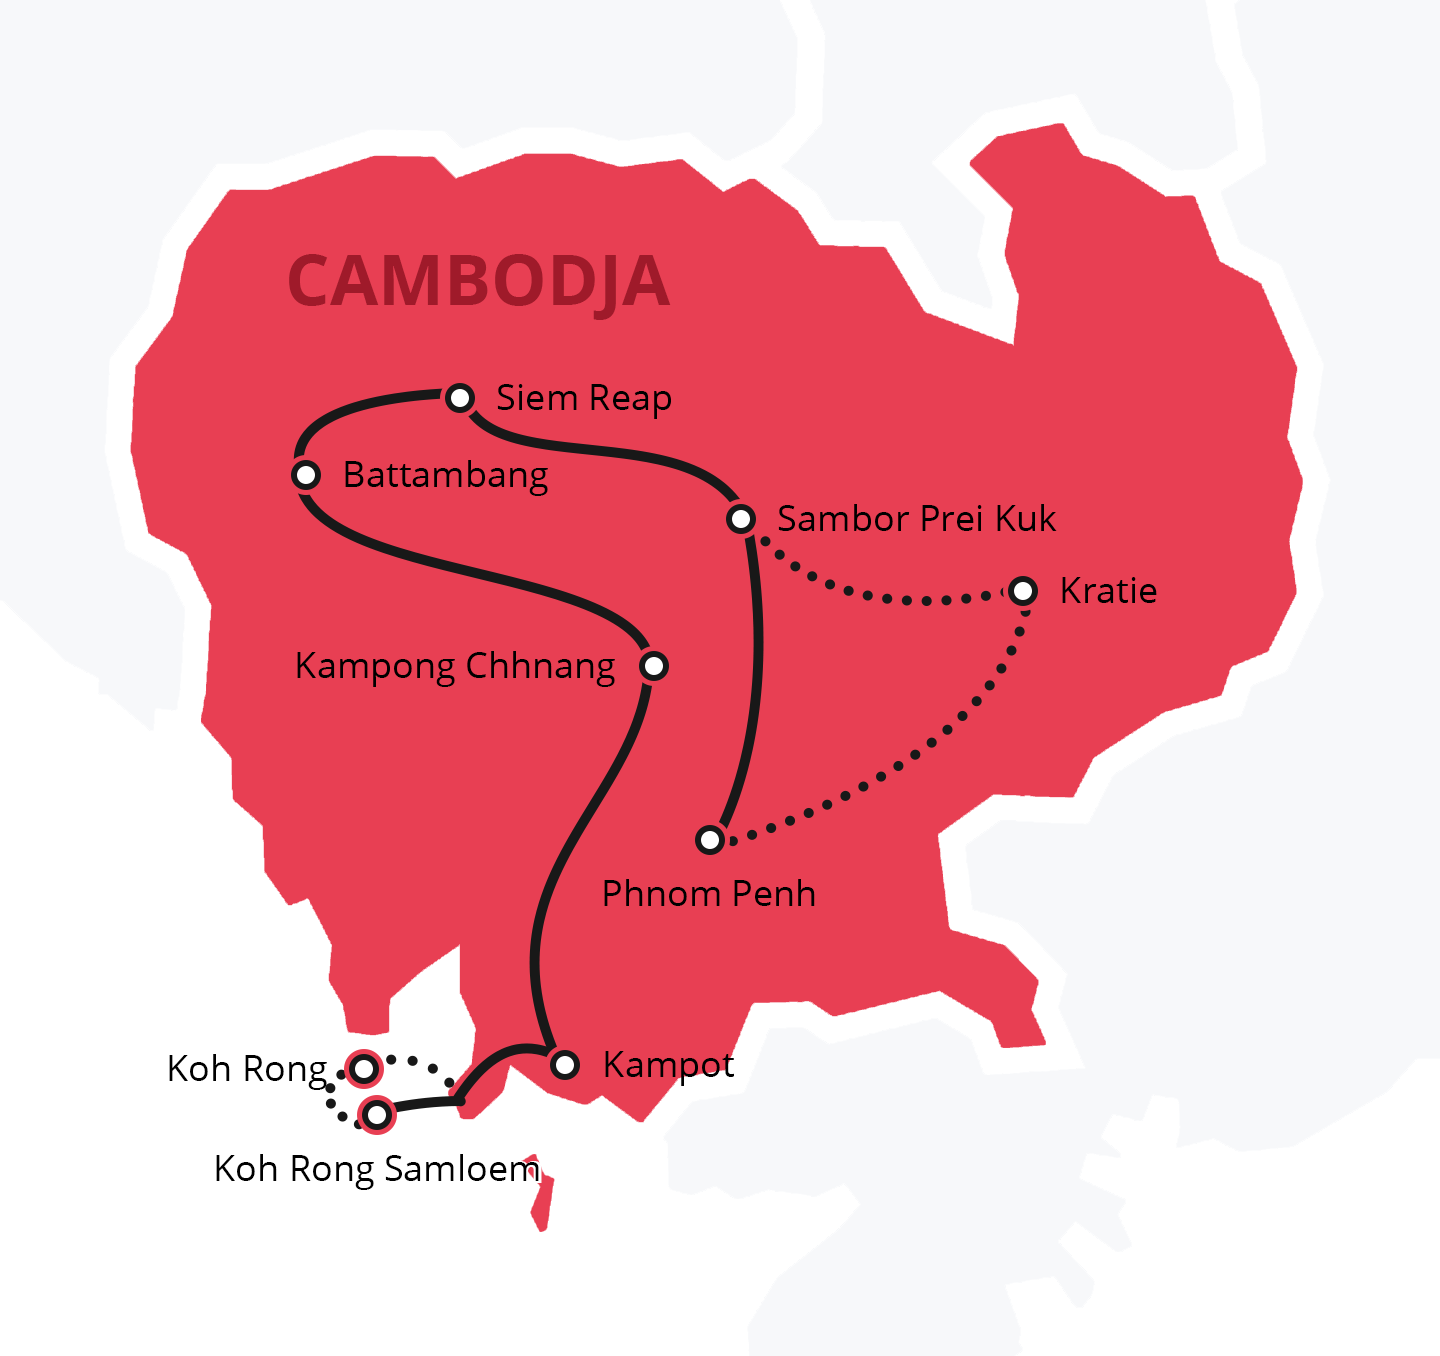 Reisroute Cambodja - Backpacken 2 tot 3 weken